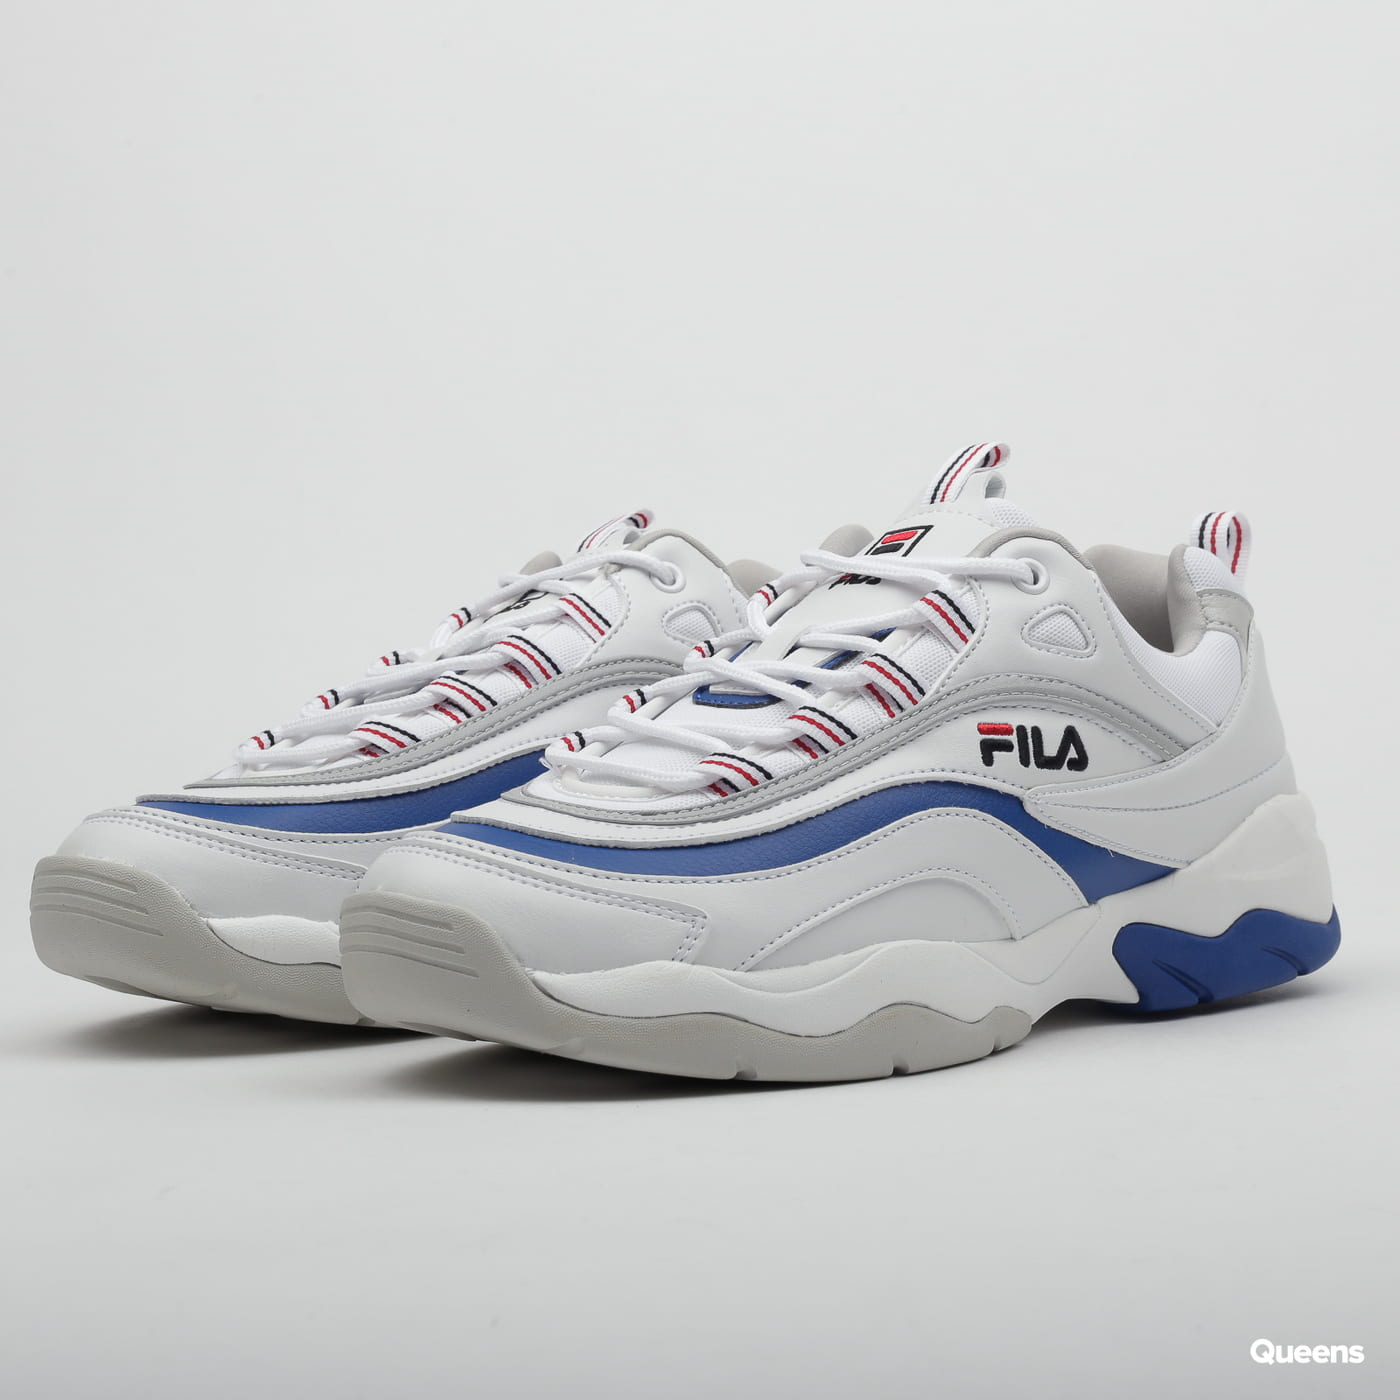 Fila Ray F Low white / electric blue / gray violet